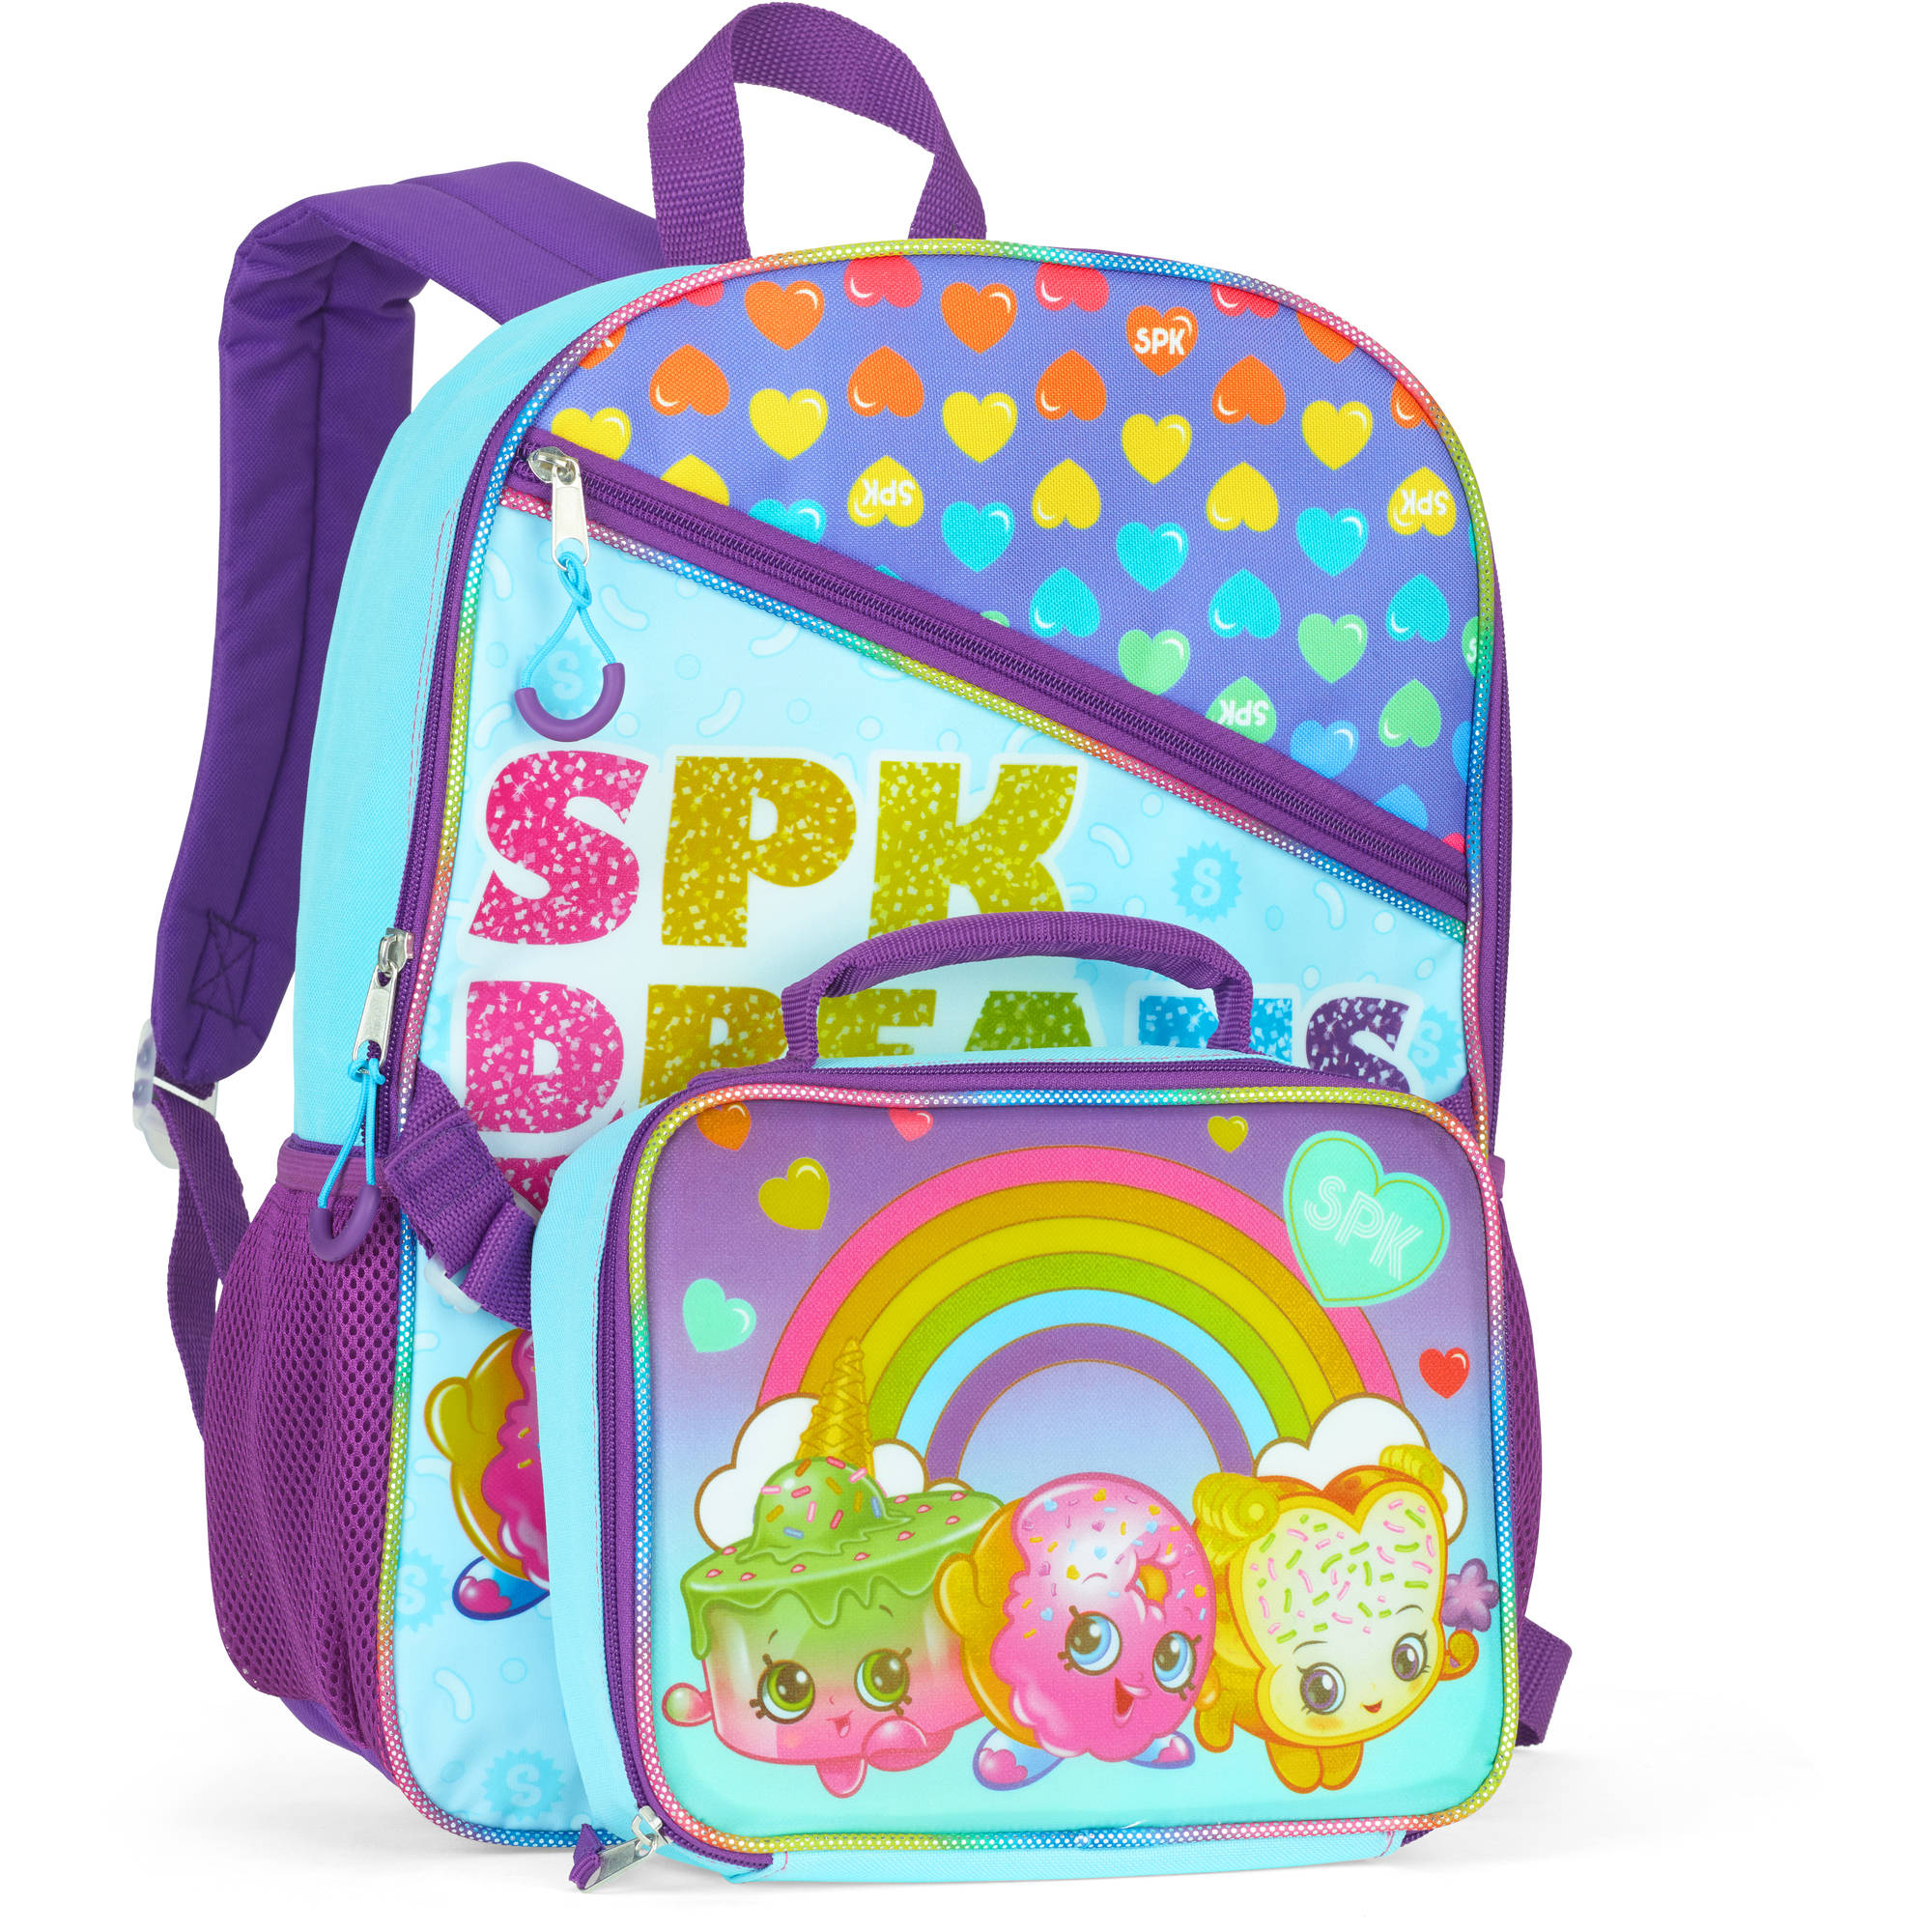 """Rainbow Shopkins 16"""" Full-Size Backpack With Detachable Lunch Bag by FAST FORWARD, LLC."""